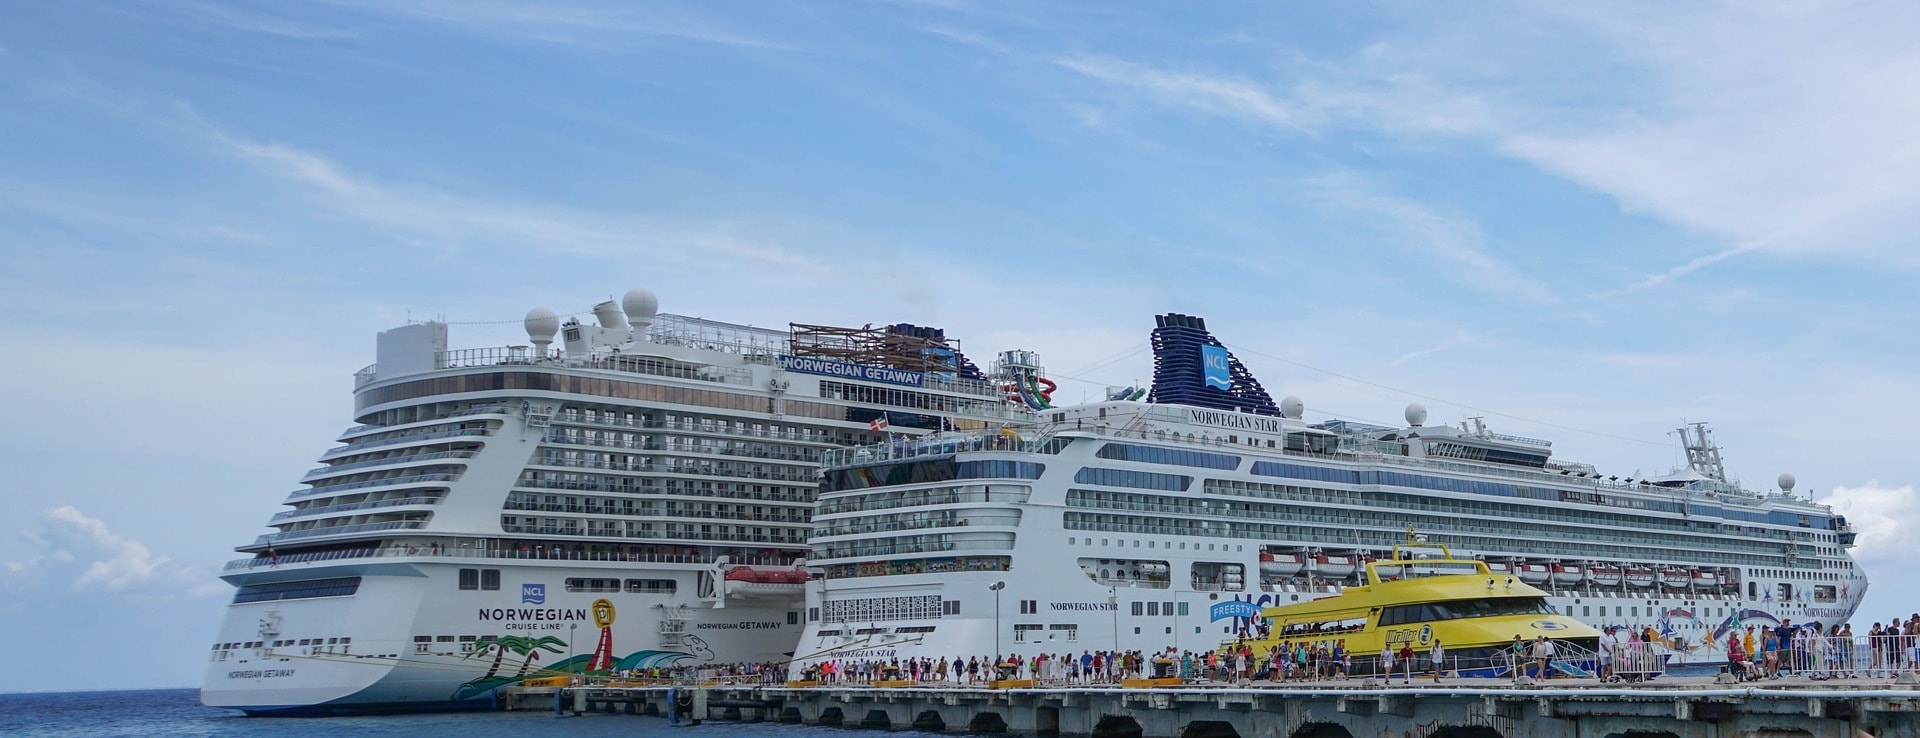 Norwegian Cruise Line Stock Is A Bargain At Mid-Teens